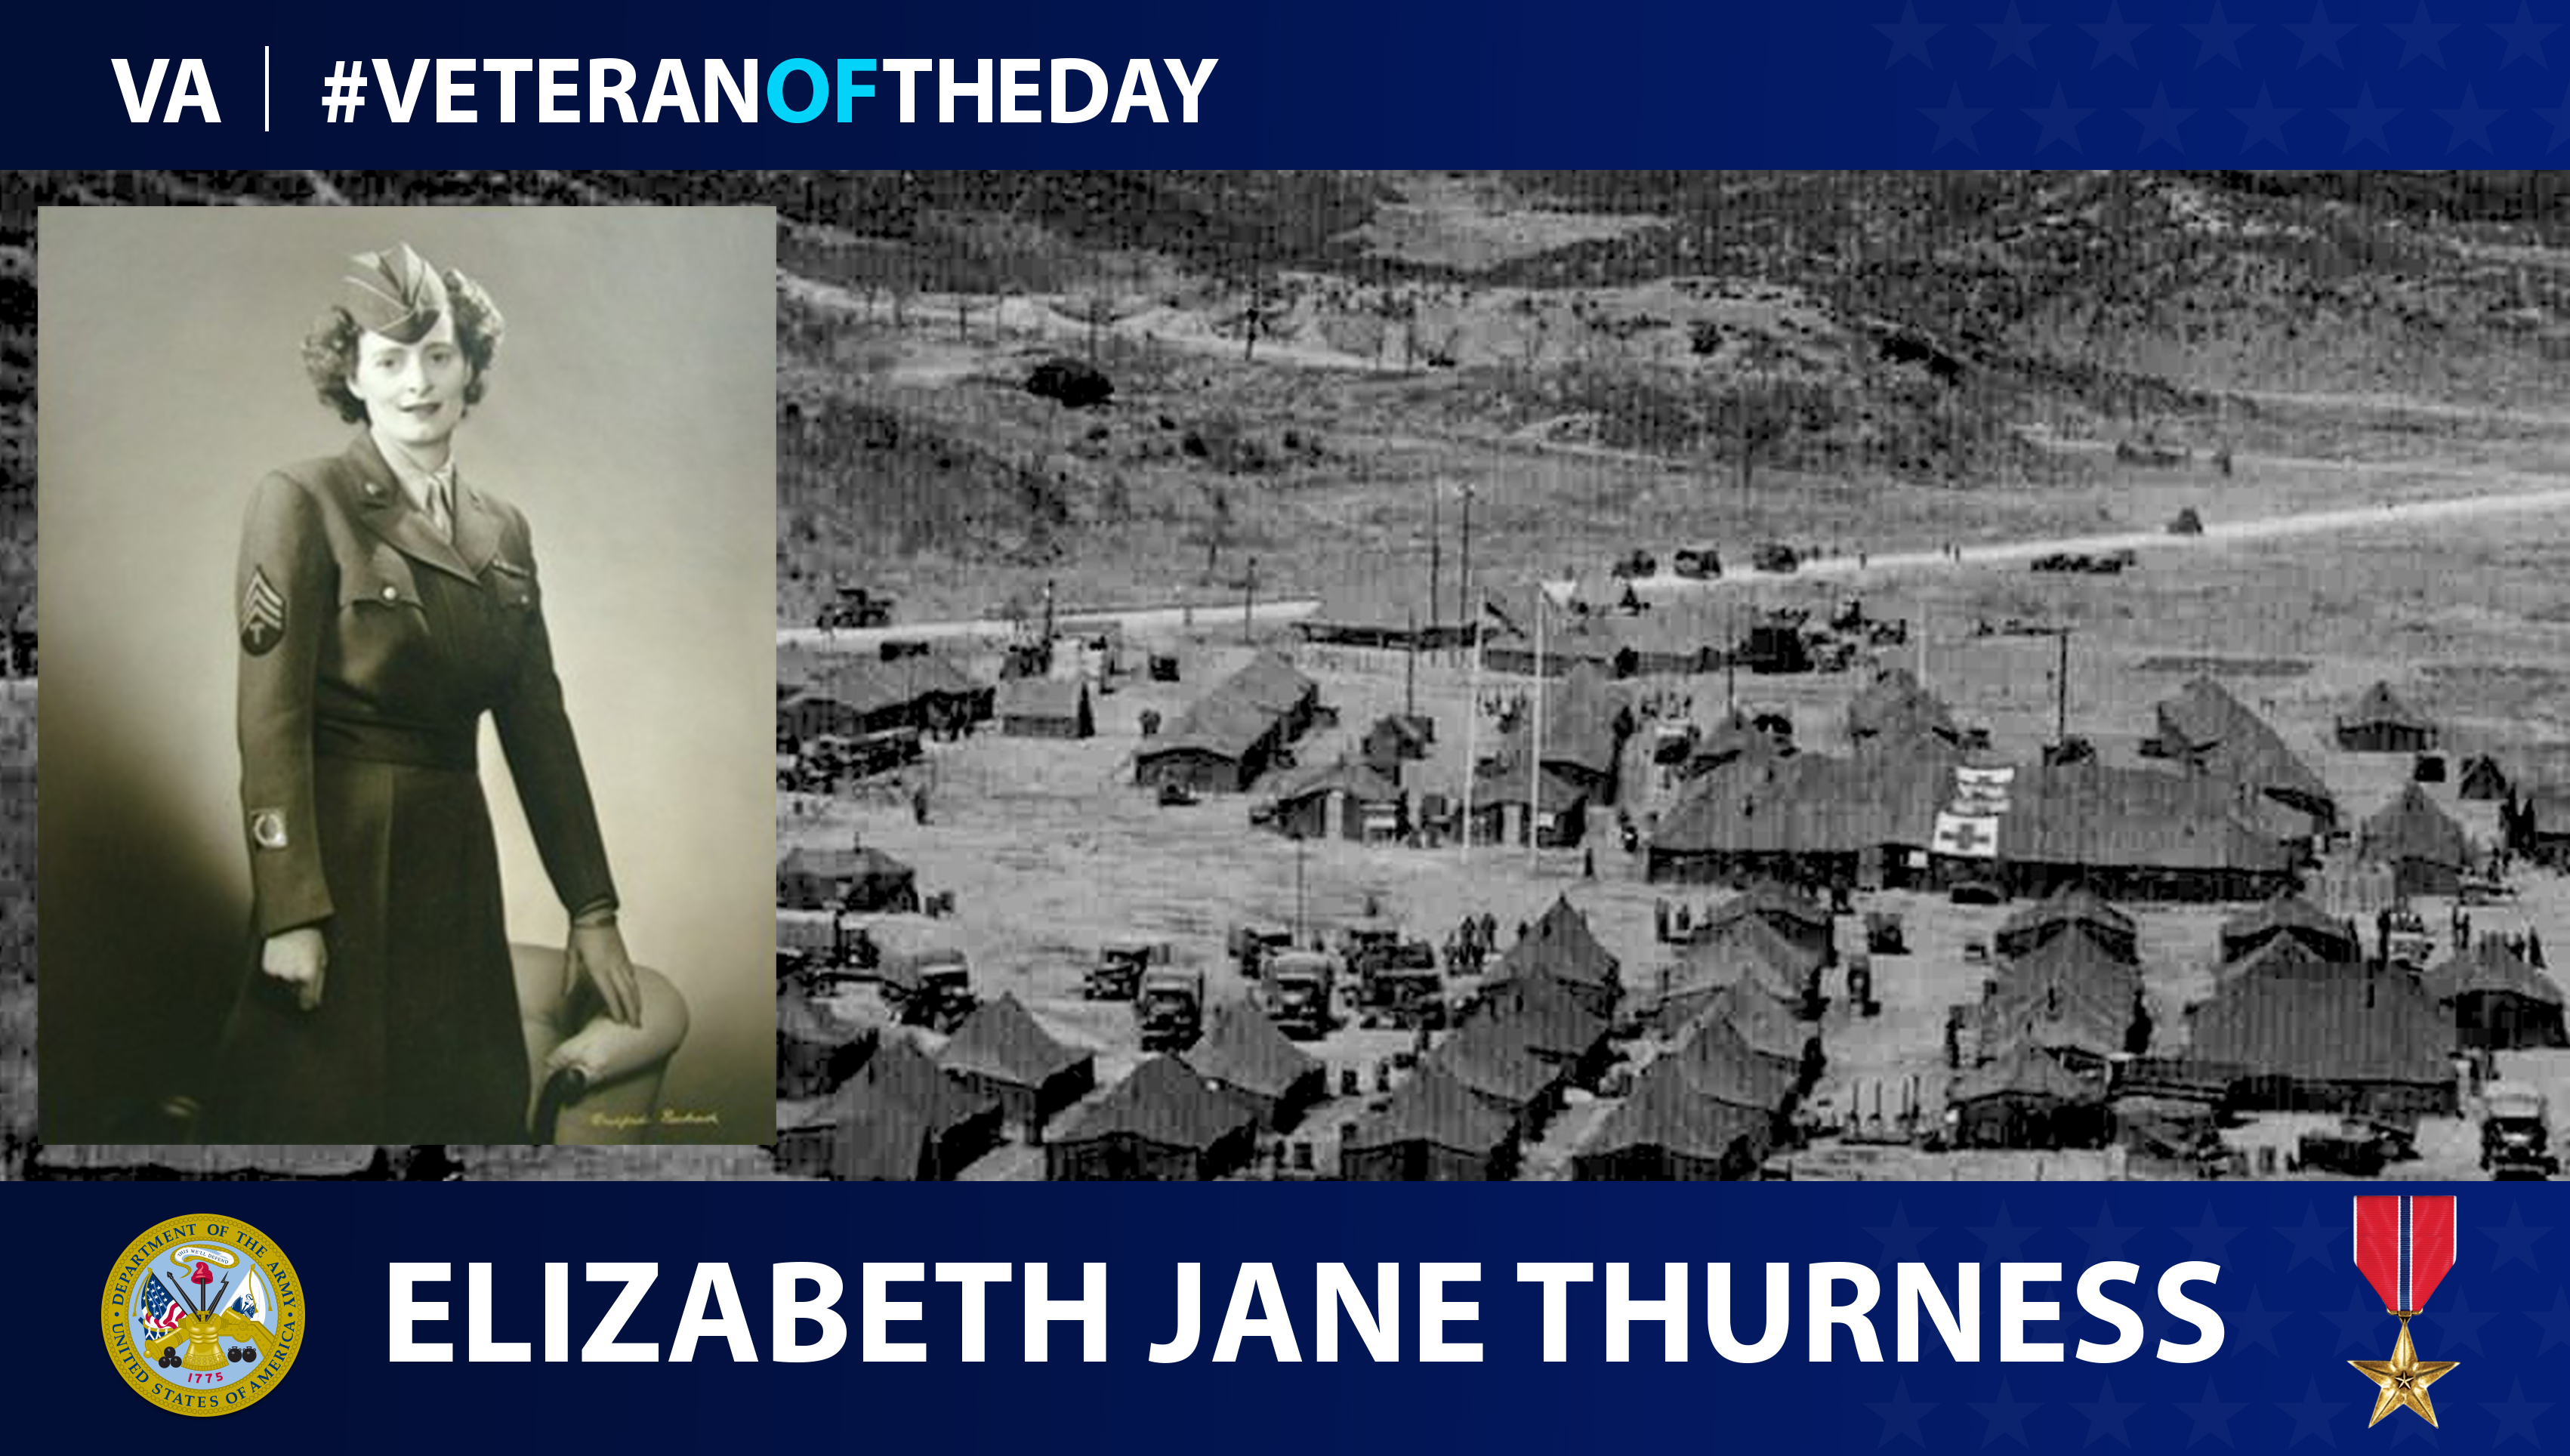 Veteran of the Day...Elizabeth Jane Thurness